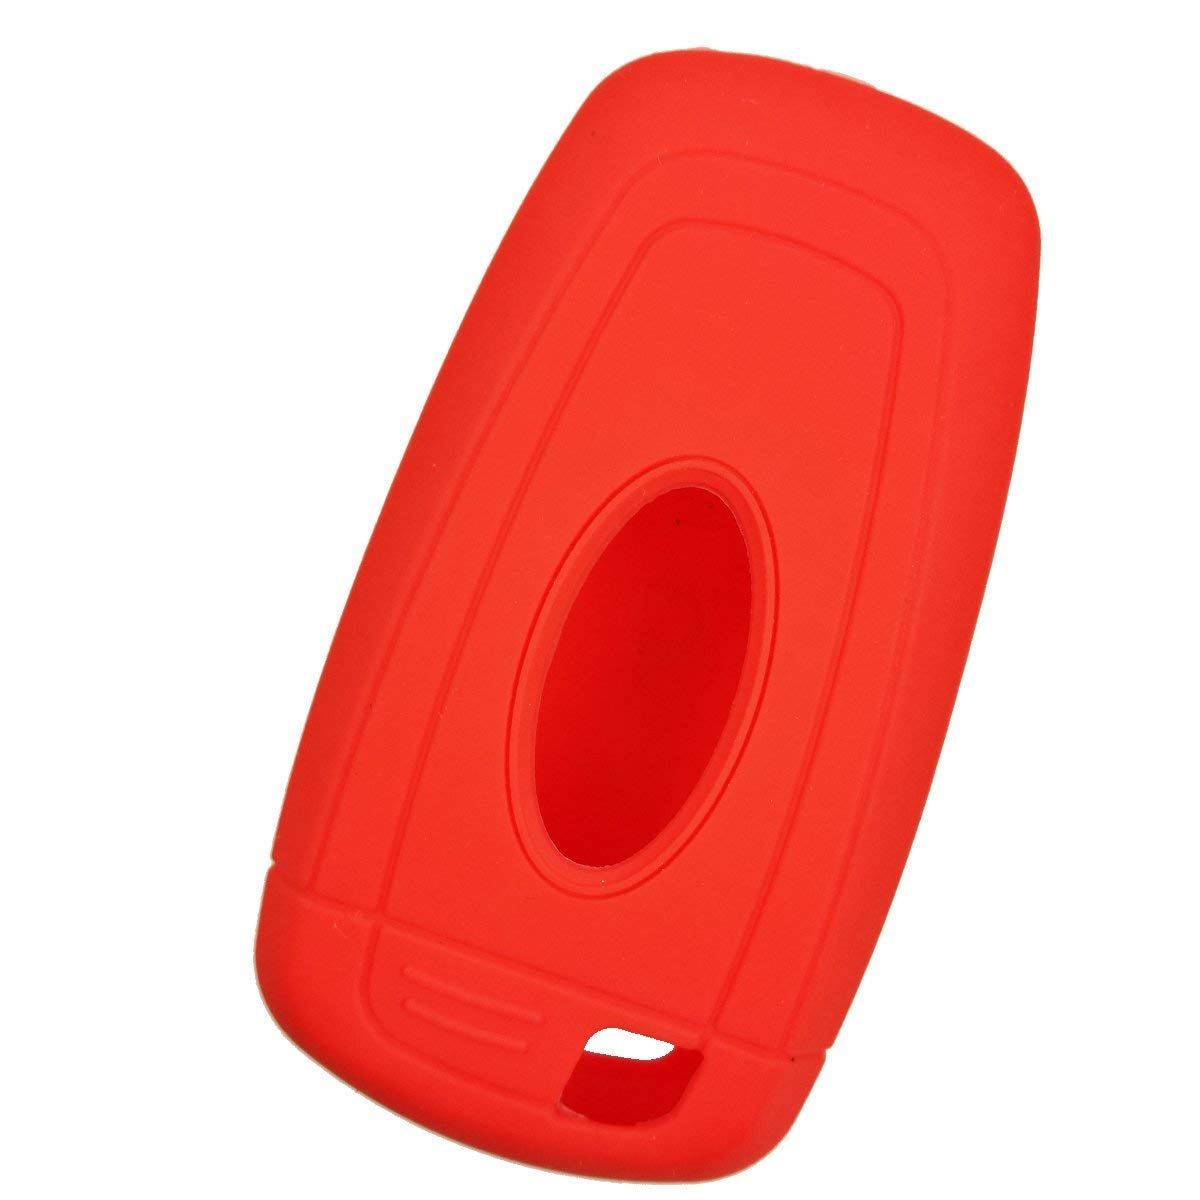 Red E-Senior 5 Buttons Silicone Car Key Case//Cover Remote Fob Key Case Cover Remote Holder Protector for 2017 Ford Fusion F250 F350 F450 F550